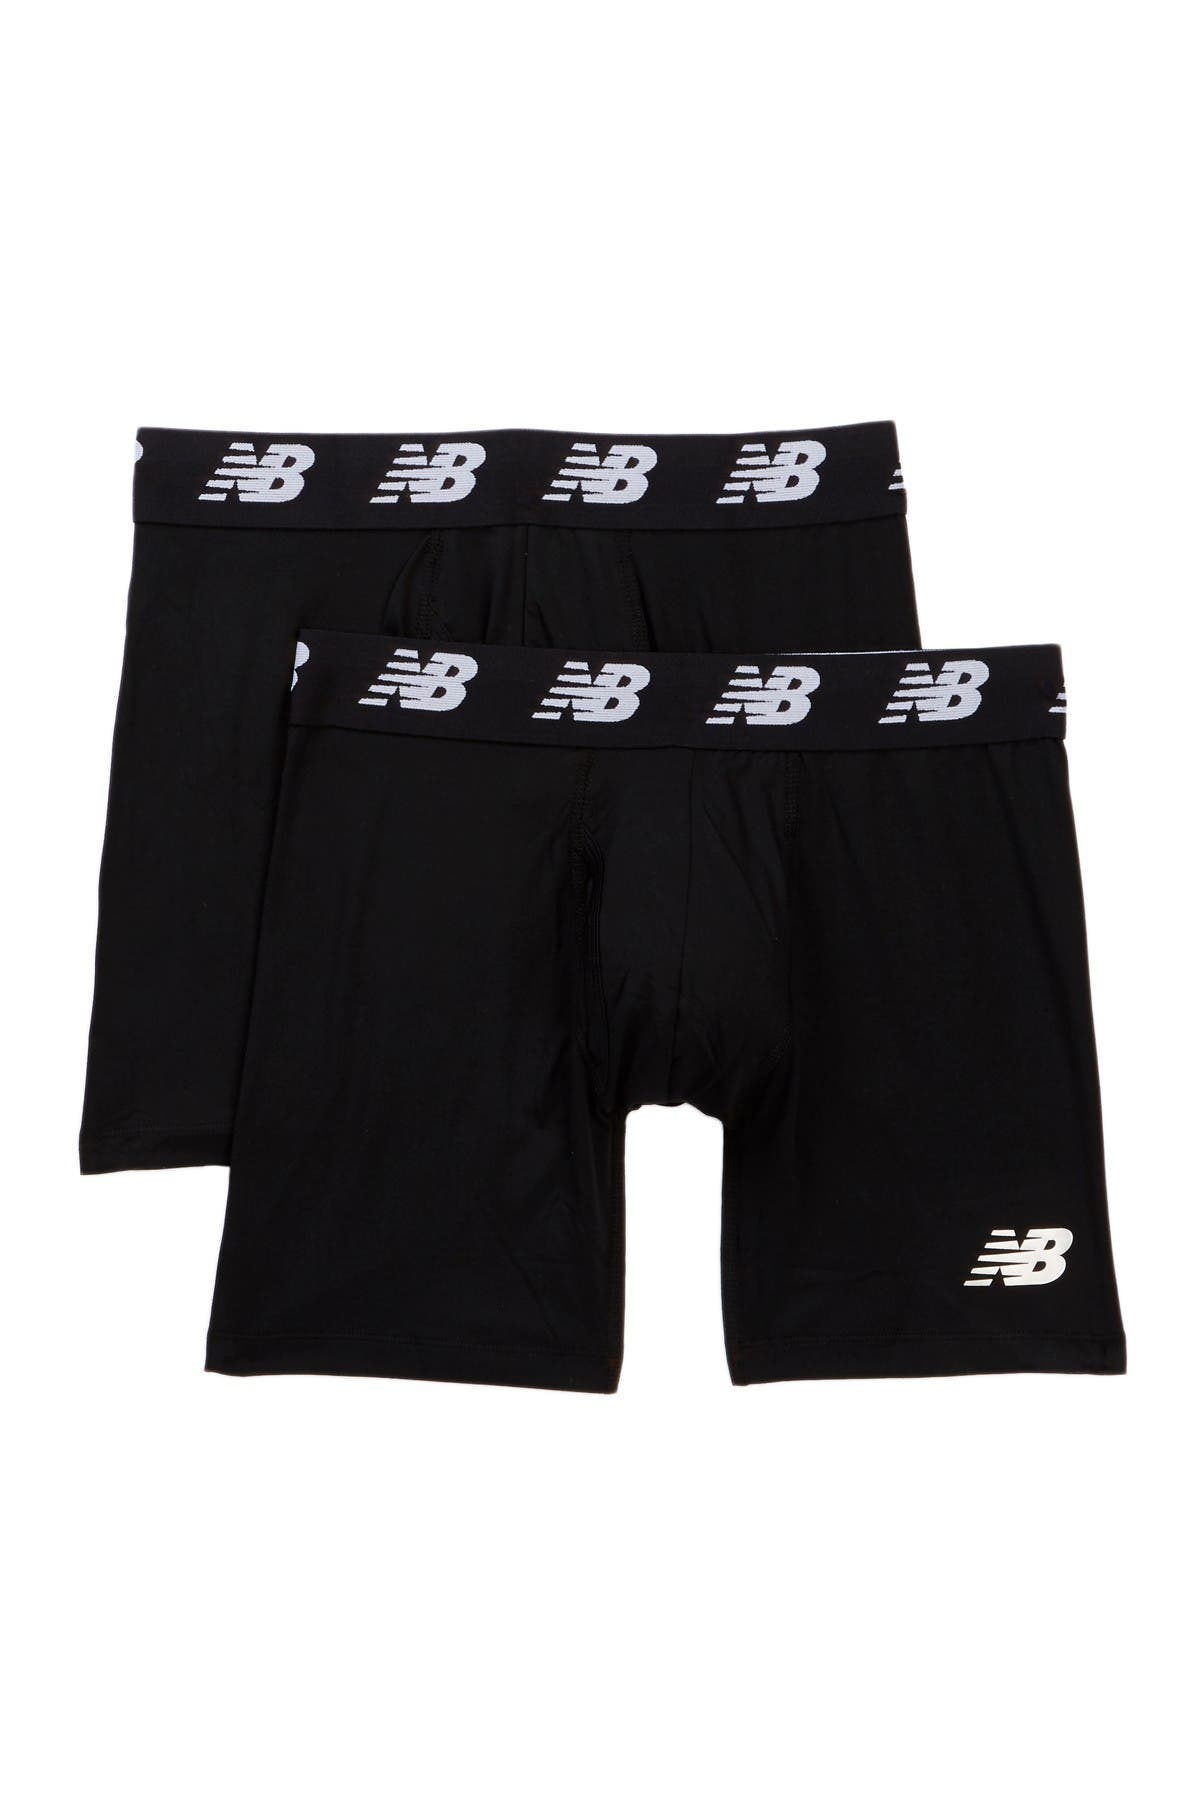 """Image of New Balance Performance Everyday 6"""" Boxer Briefs - Pack of 2"""